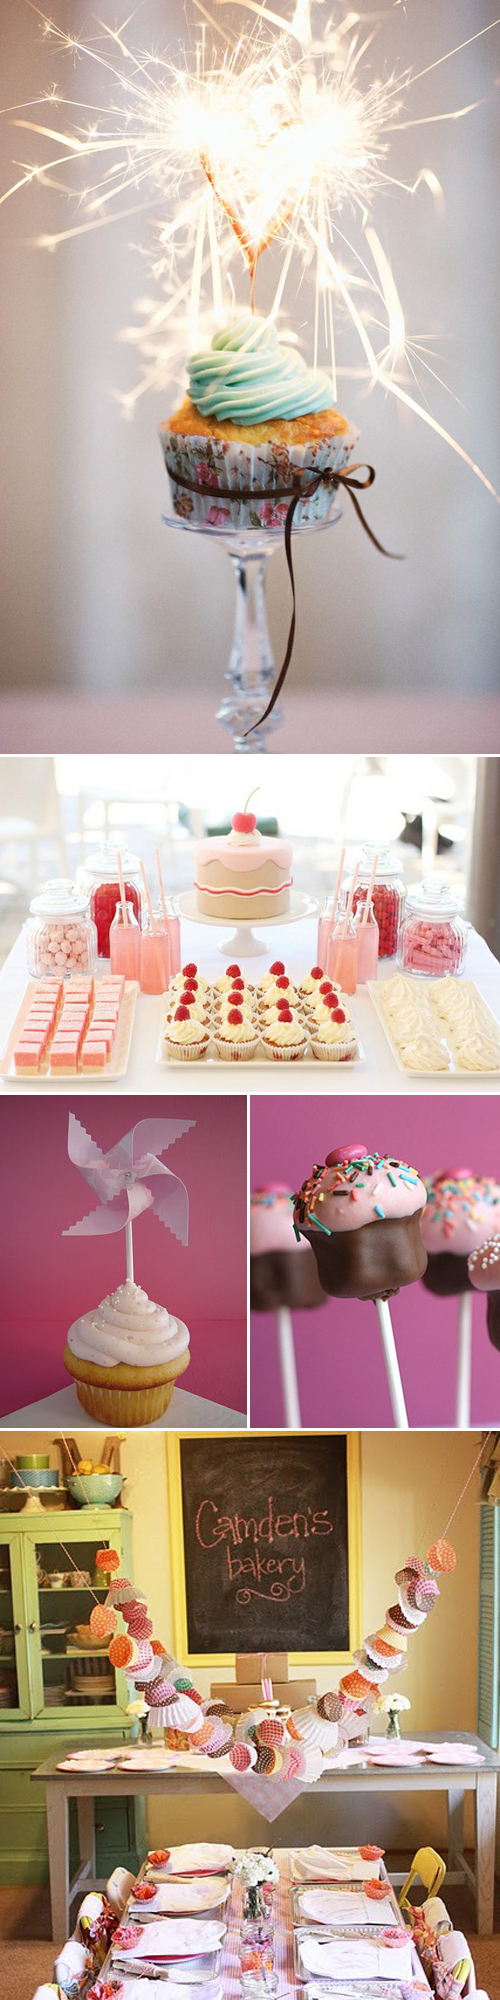 Cupcake Theme Birthday Party Inspiration